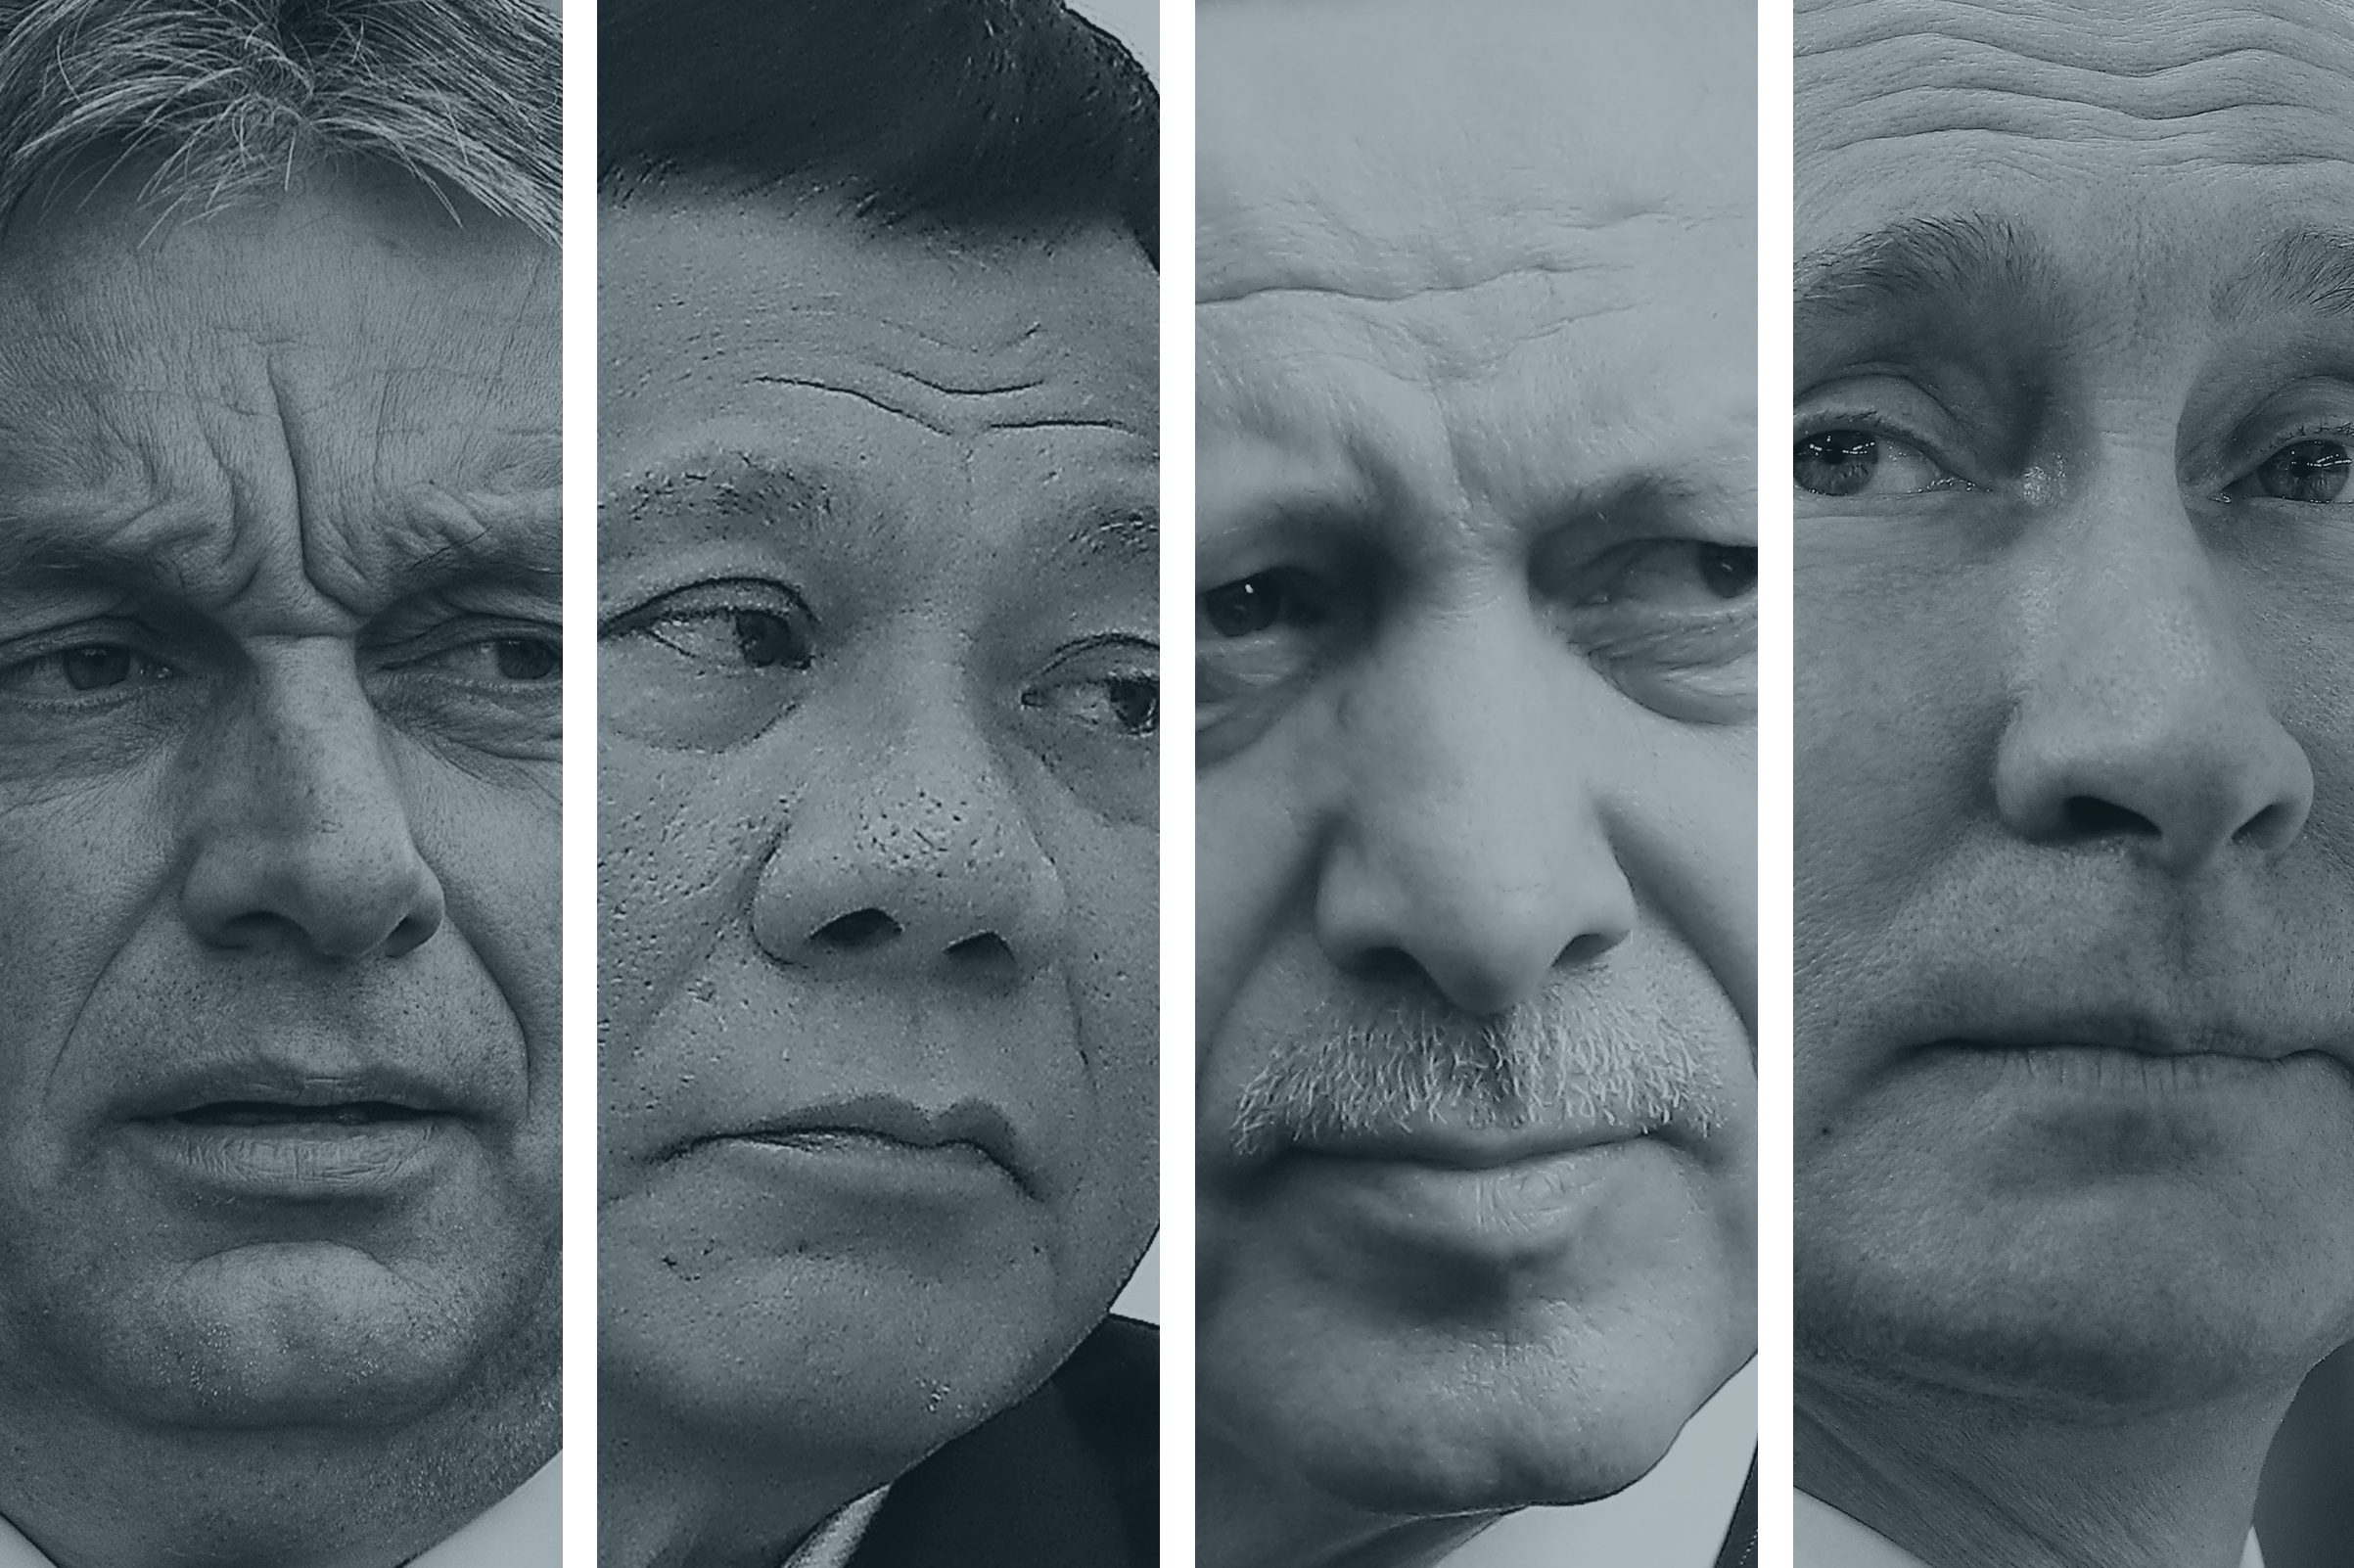 A composite photo showing Hungarian Prime Minister Viktor Orban, Philippines' President Rodrigo Duterte, President of Turkey Recep Tayyip Erdogan, and Russian President Vladimir Putin